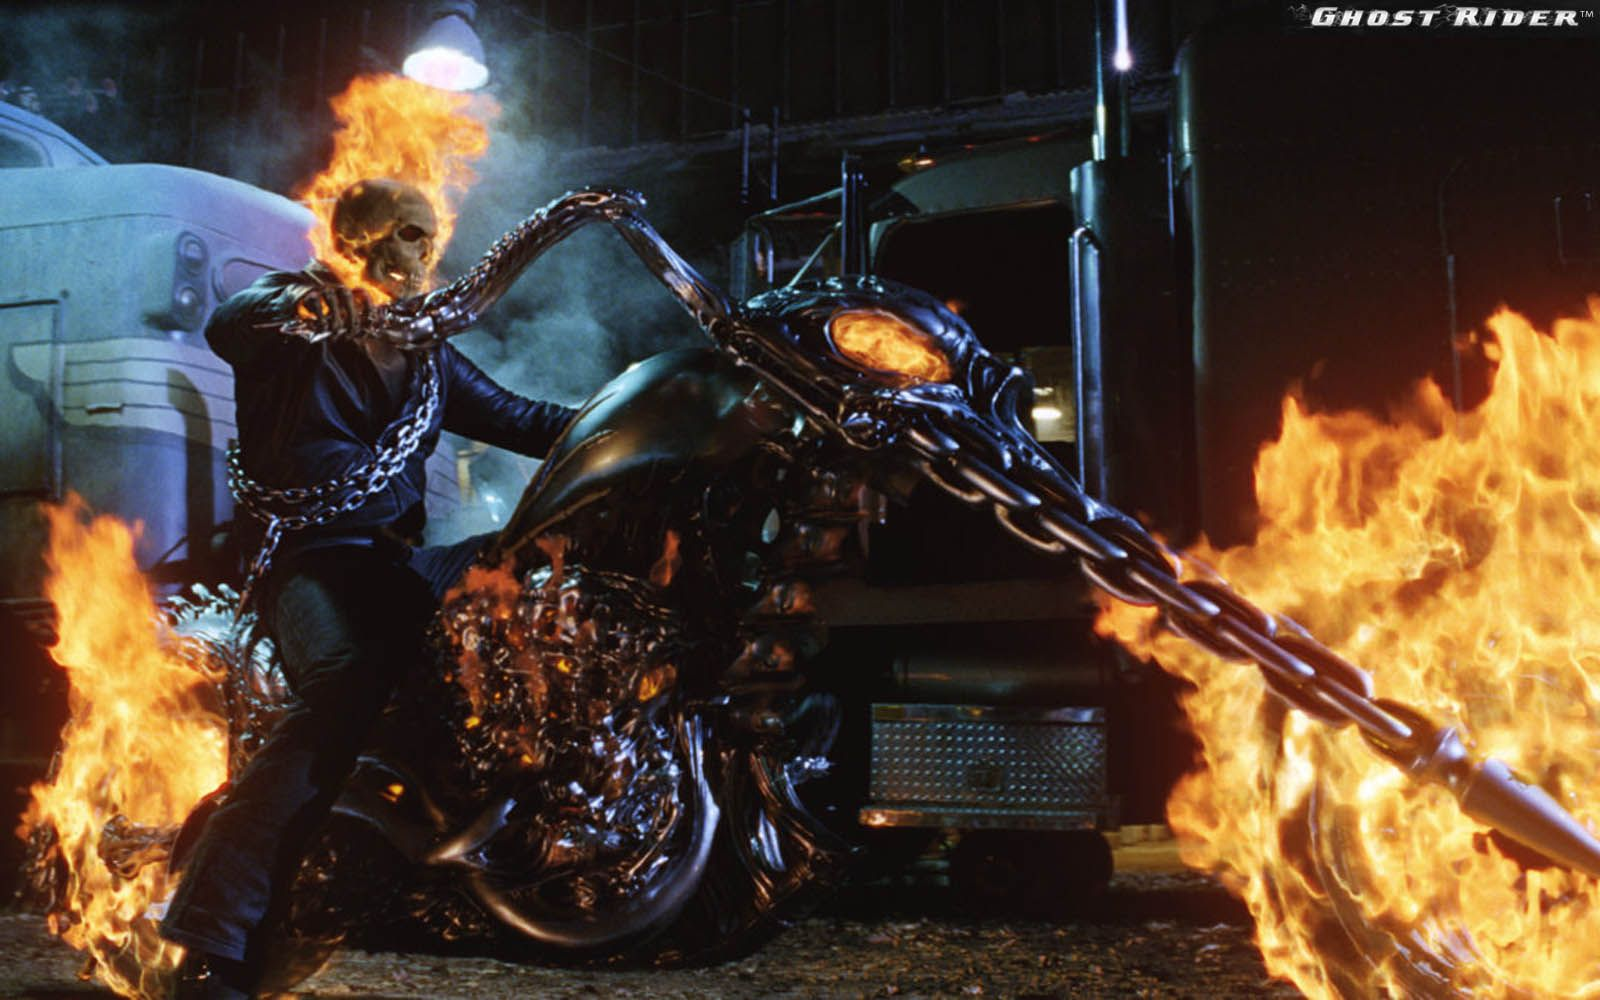 ghost rider mobile phone wallpapers mobile phone hd 1024×662